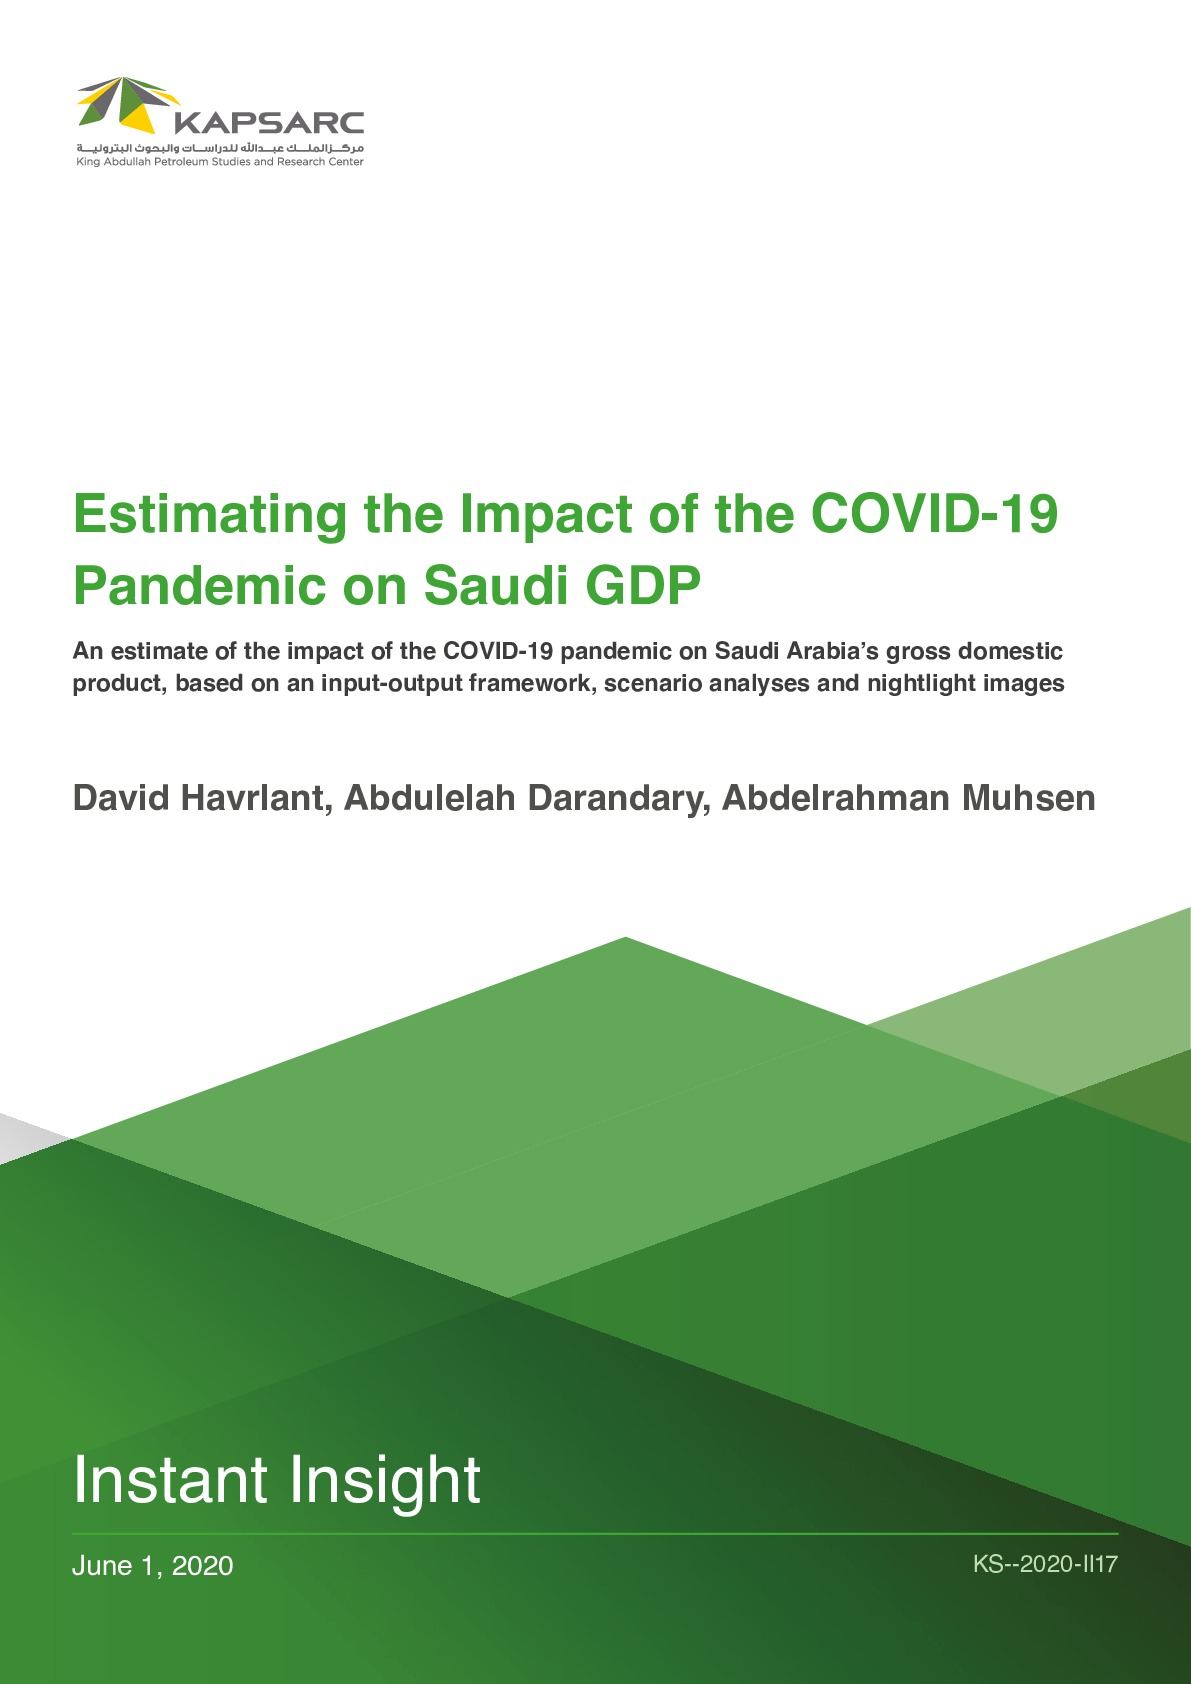 Estimating the Impact of the COVID-19 Pandemic on Saudi GDP